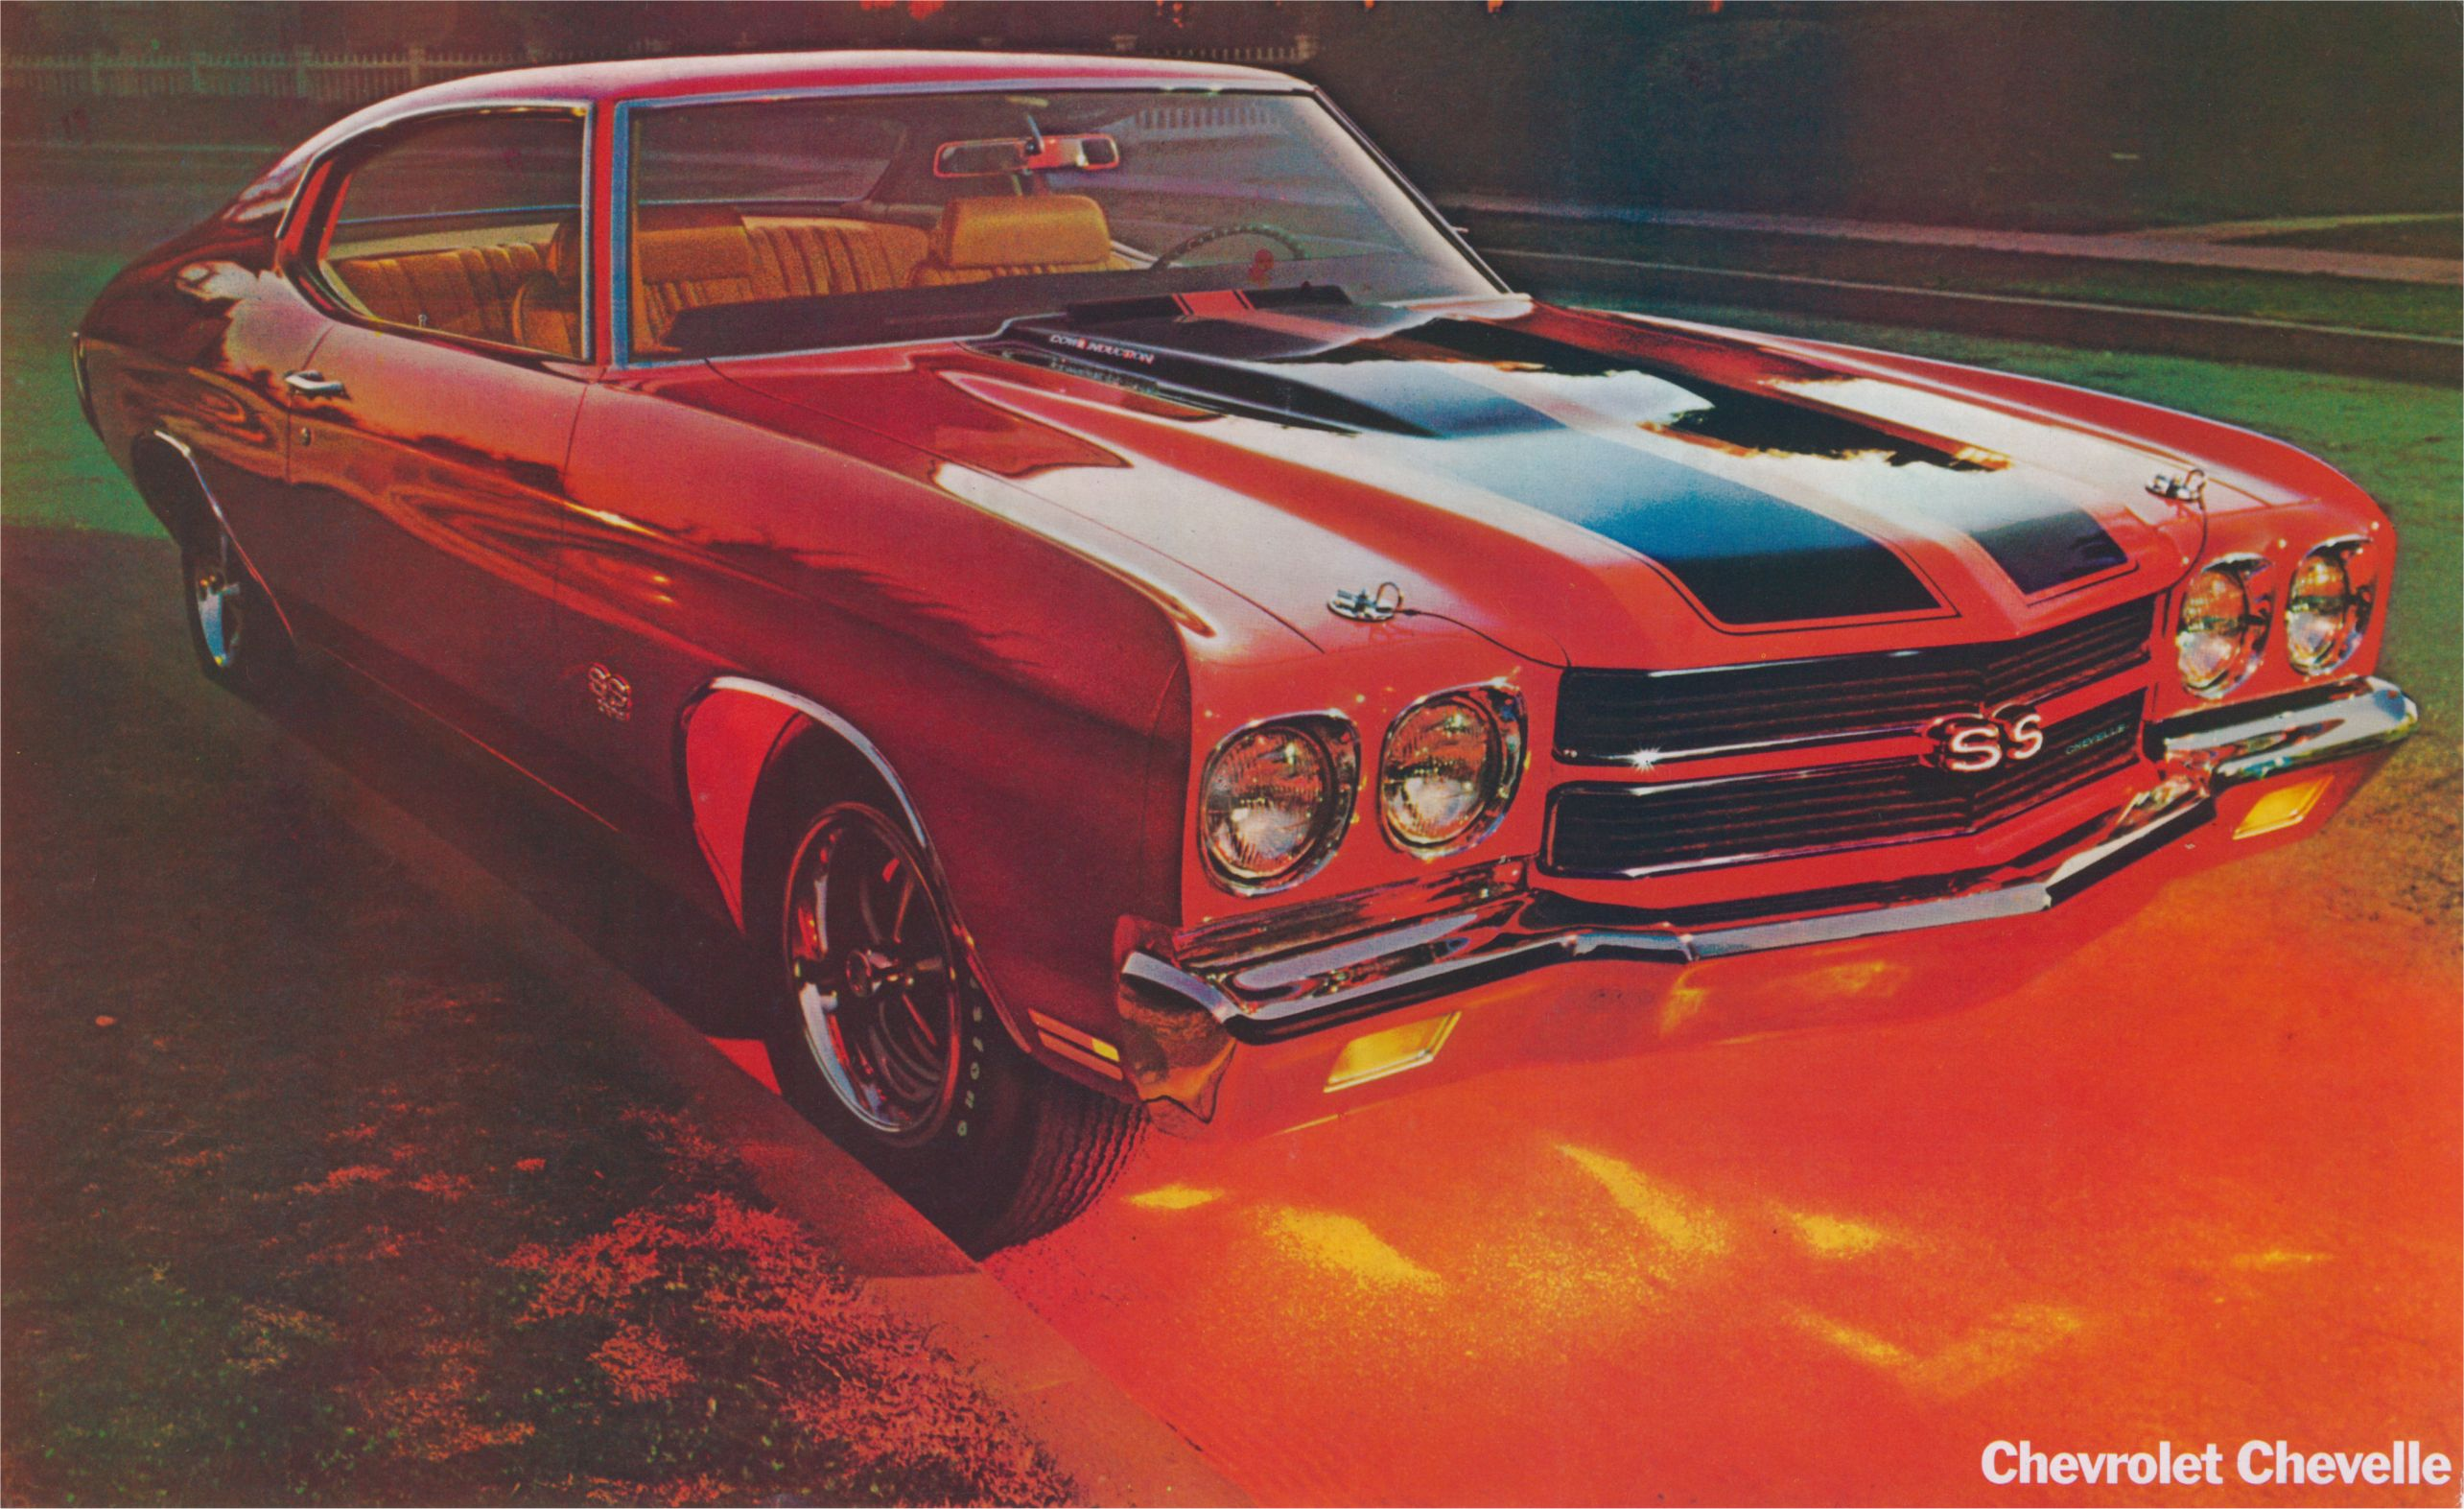 70 Chevelle Project Car http://storm.oldcarmanualproject.com/chevroletchevelle1970.htm